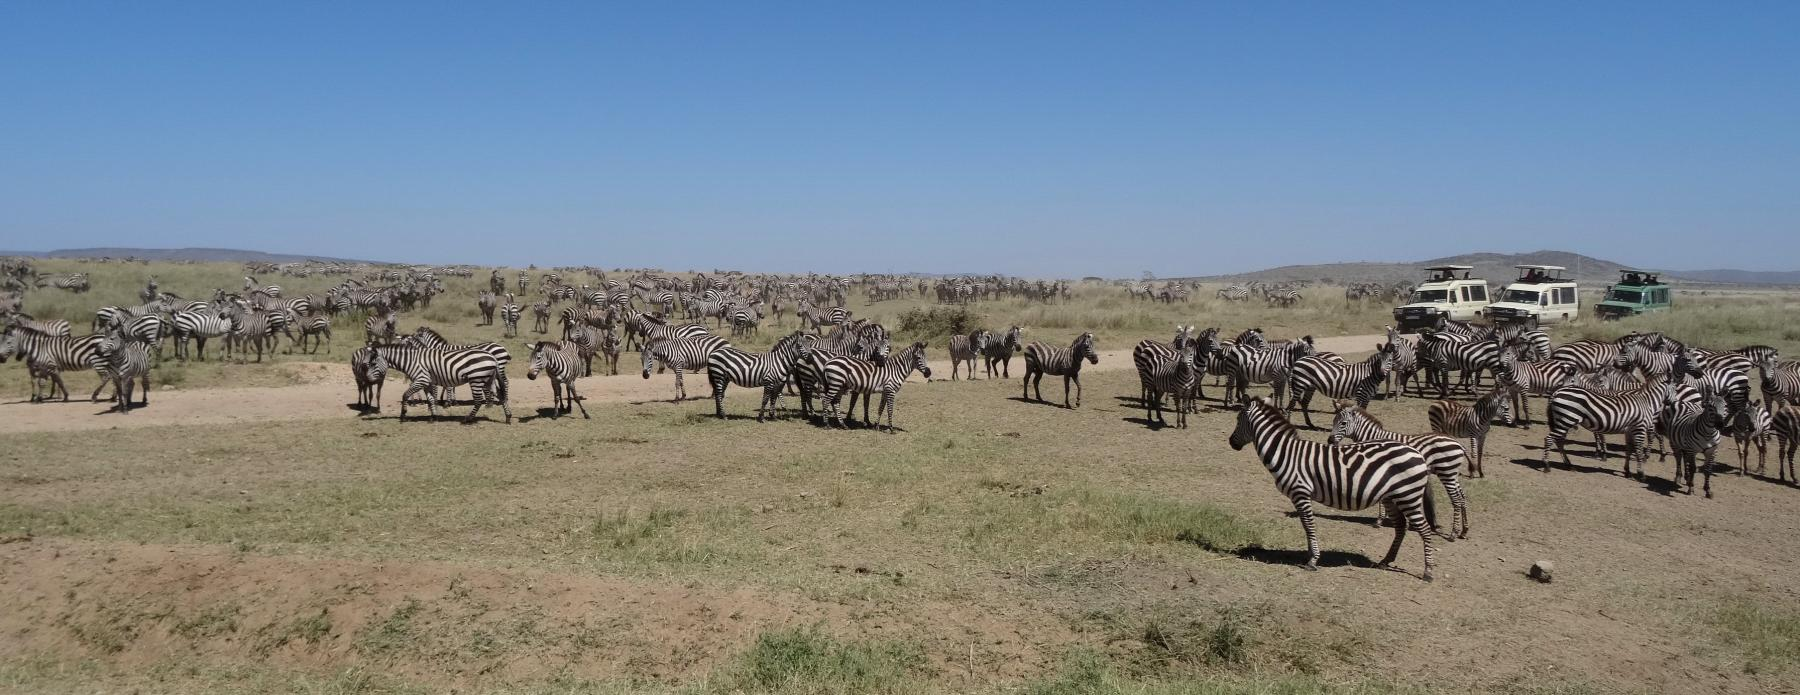 Let's explore the world's oldest ecosystem - Serengeti starting at Serengeti, Tanzania